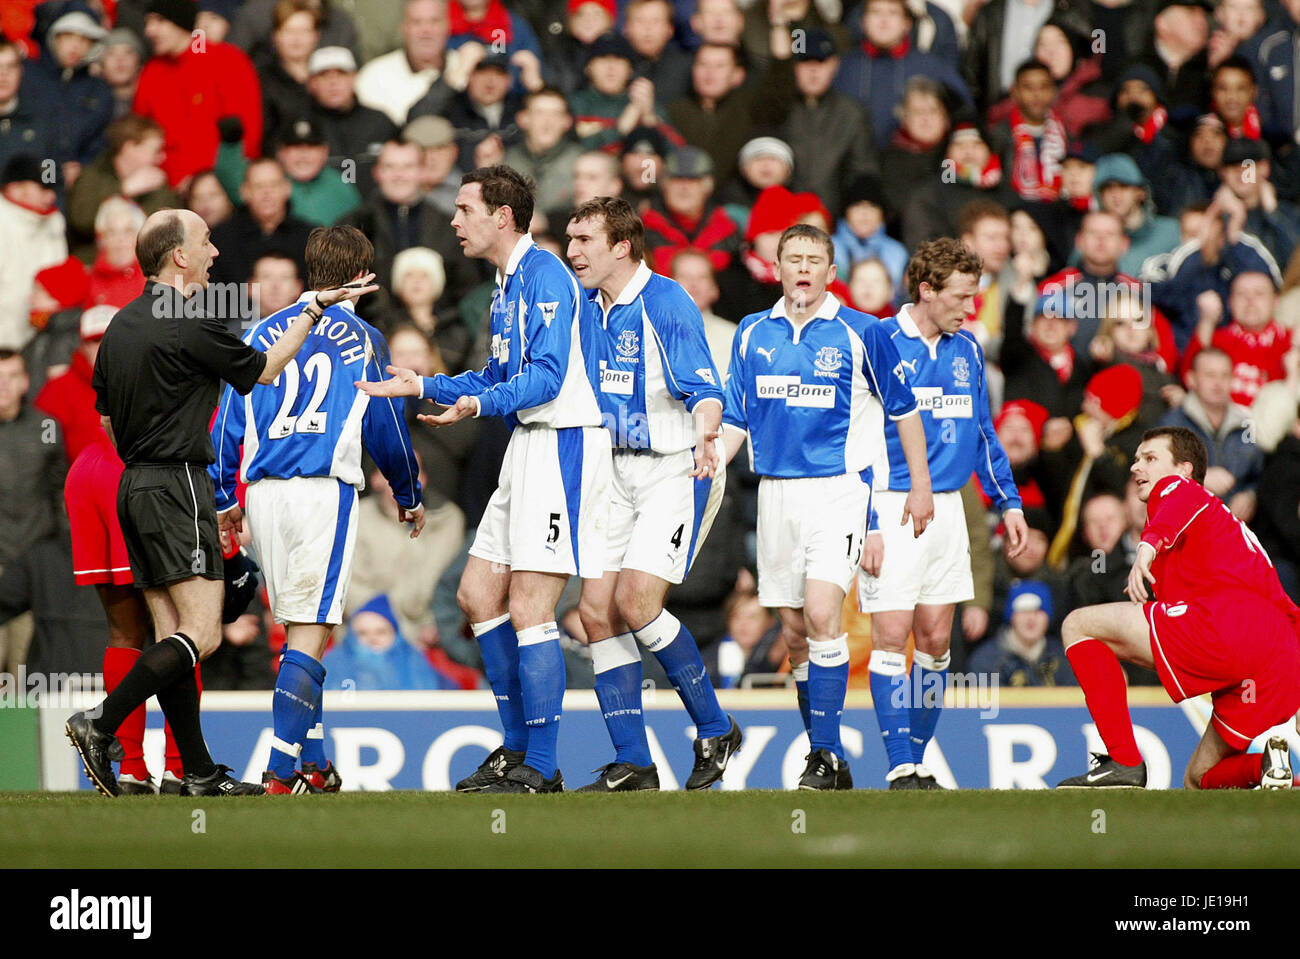 DAVID WEIR ALAN STUBBS & REF LIVERPOOL V EVERTON LIVERPOOL ANFIELD 23 February 2002 - Stock Image